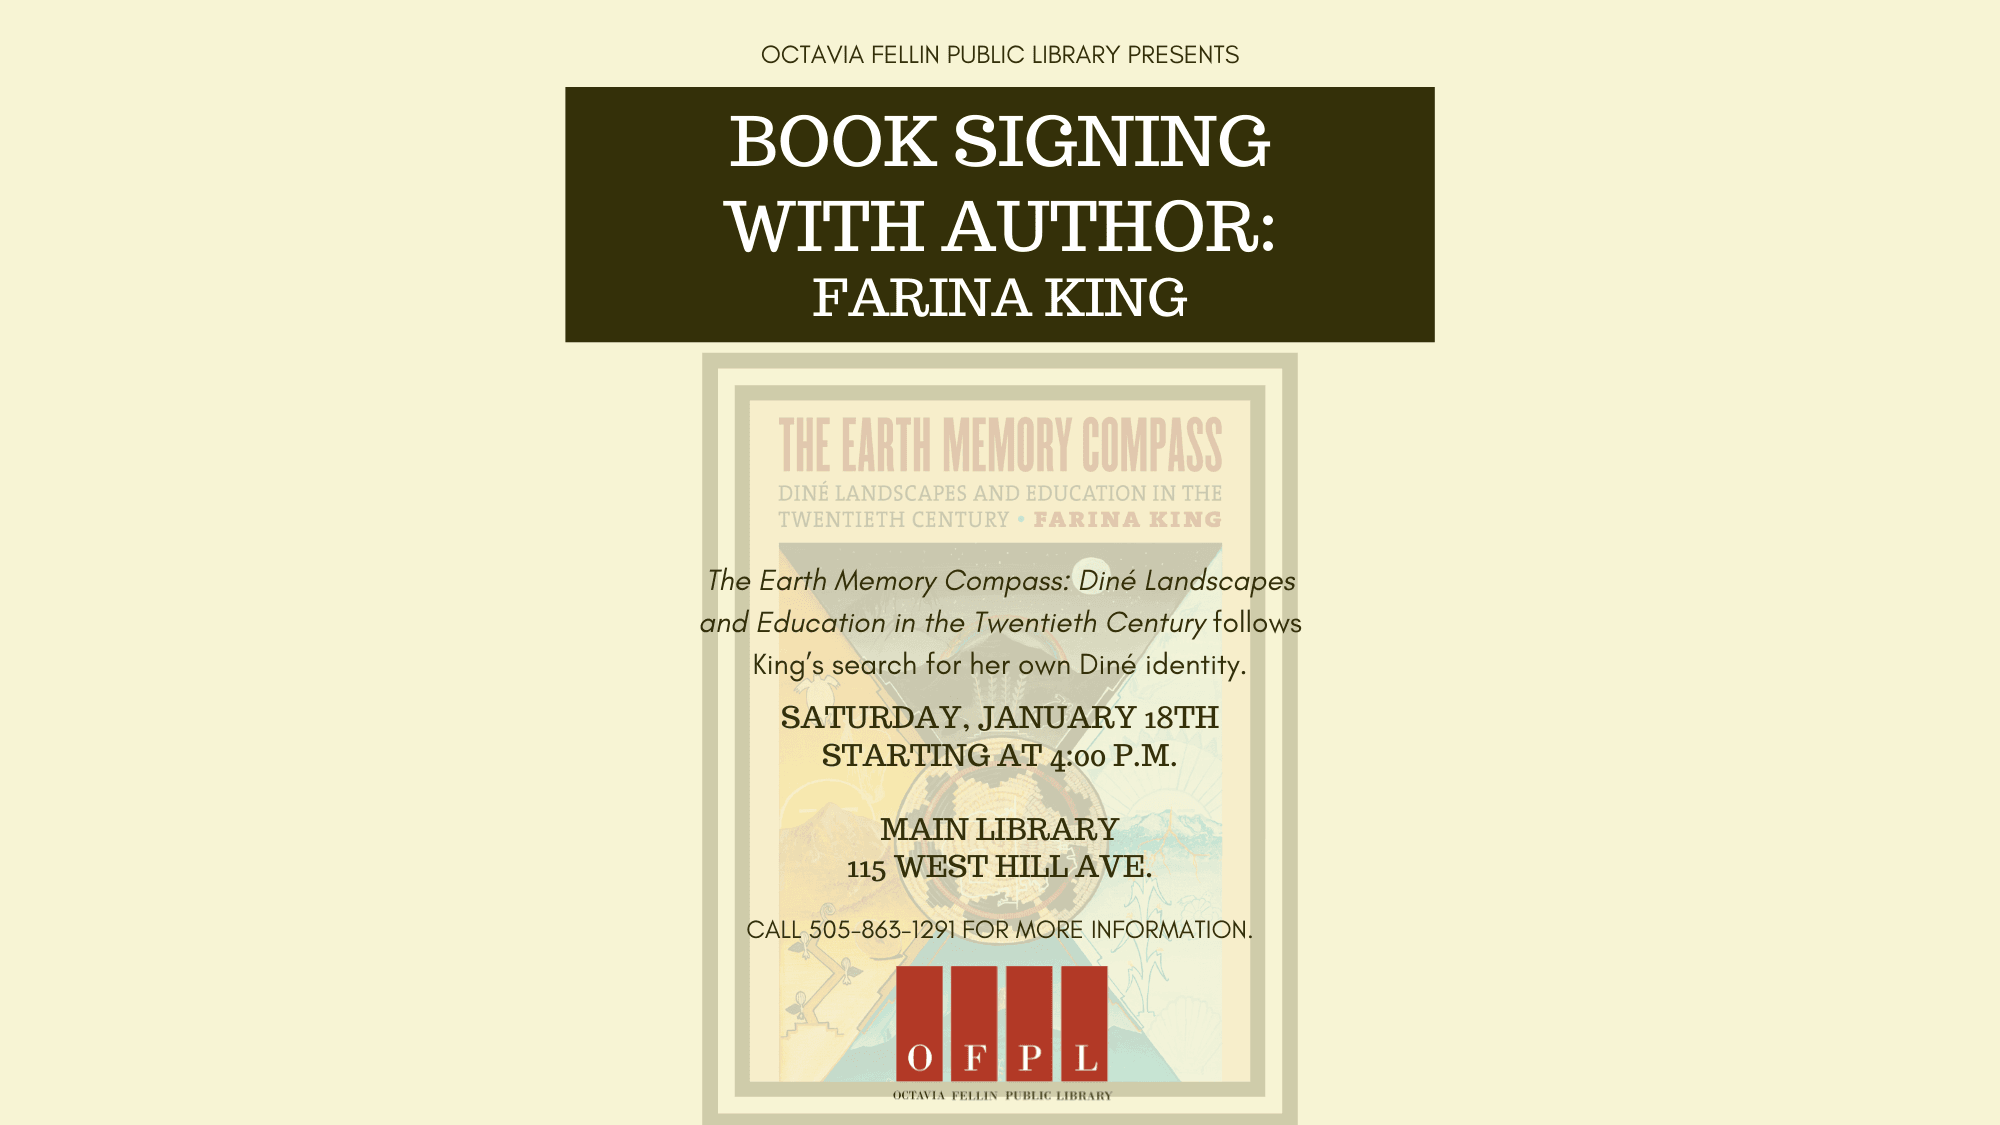 Book Signing with Author